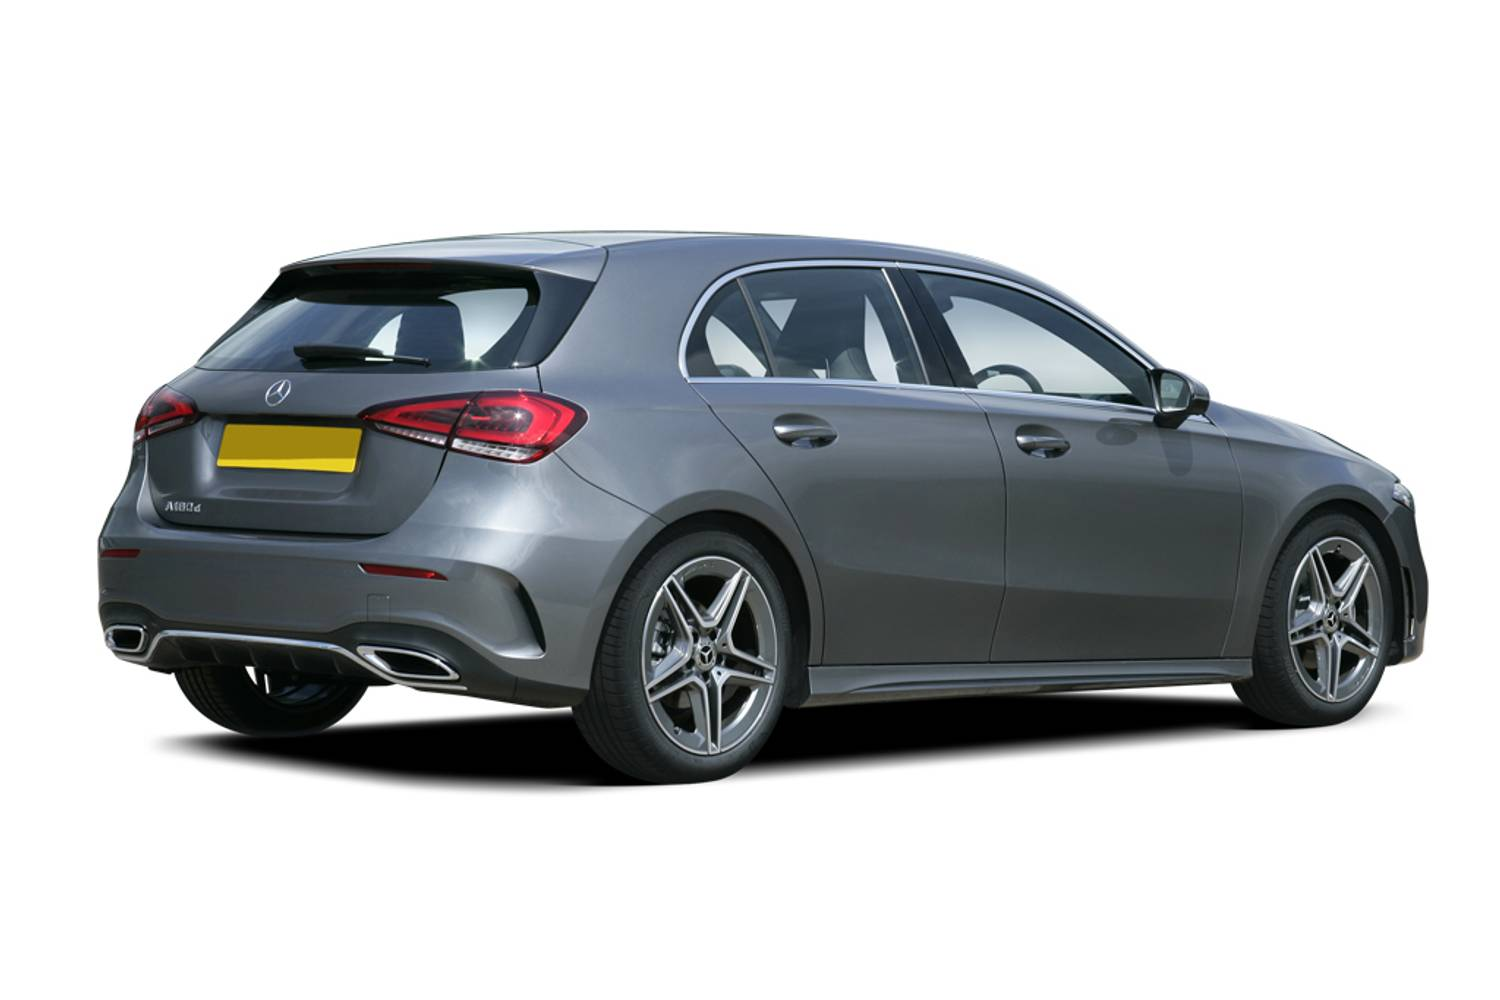 Mercedes-Benz A Class Hatchback 5dr Rear Three Quarter